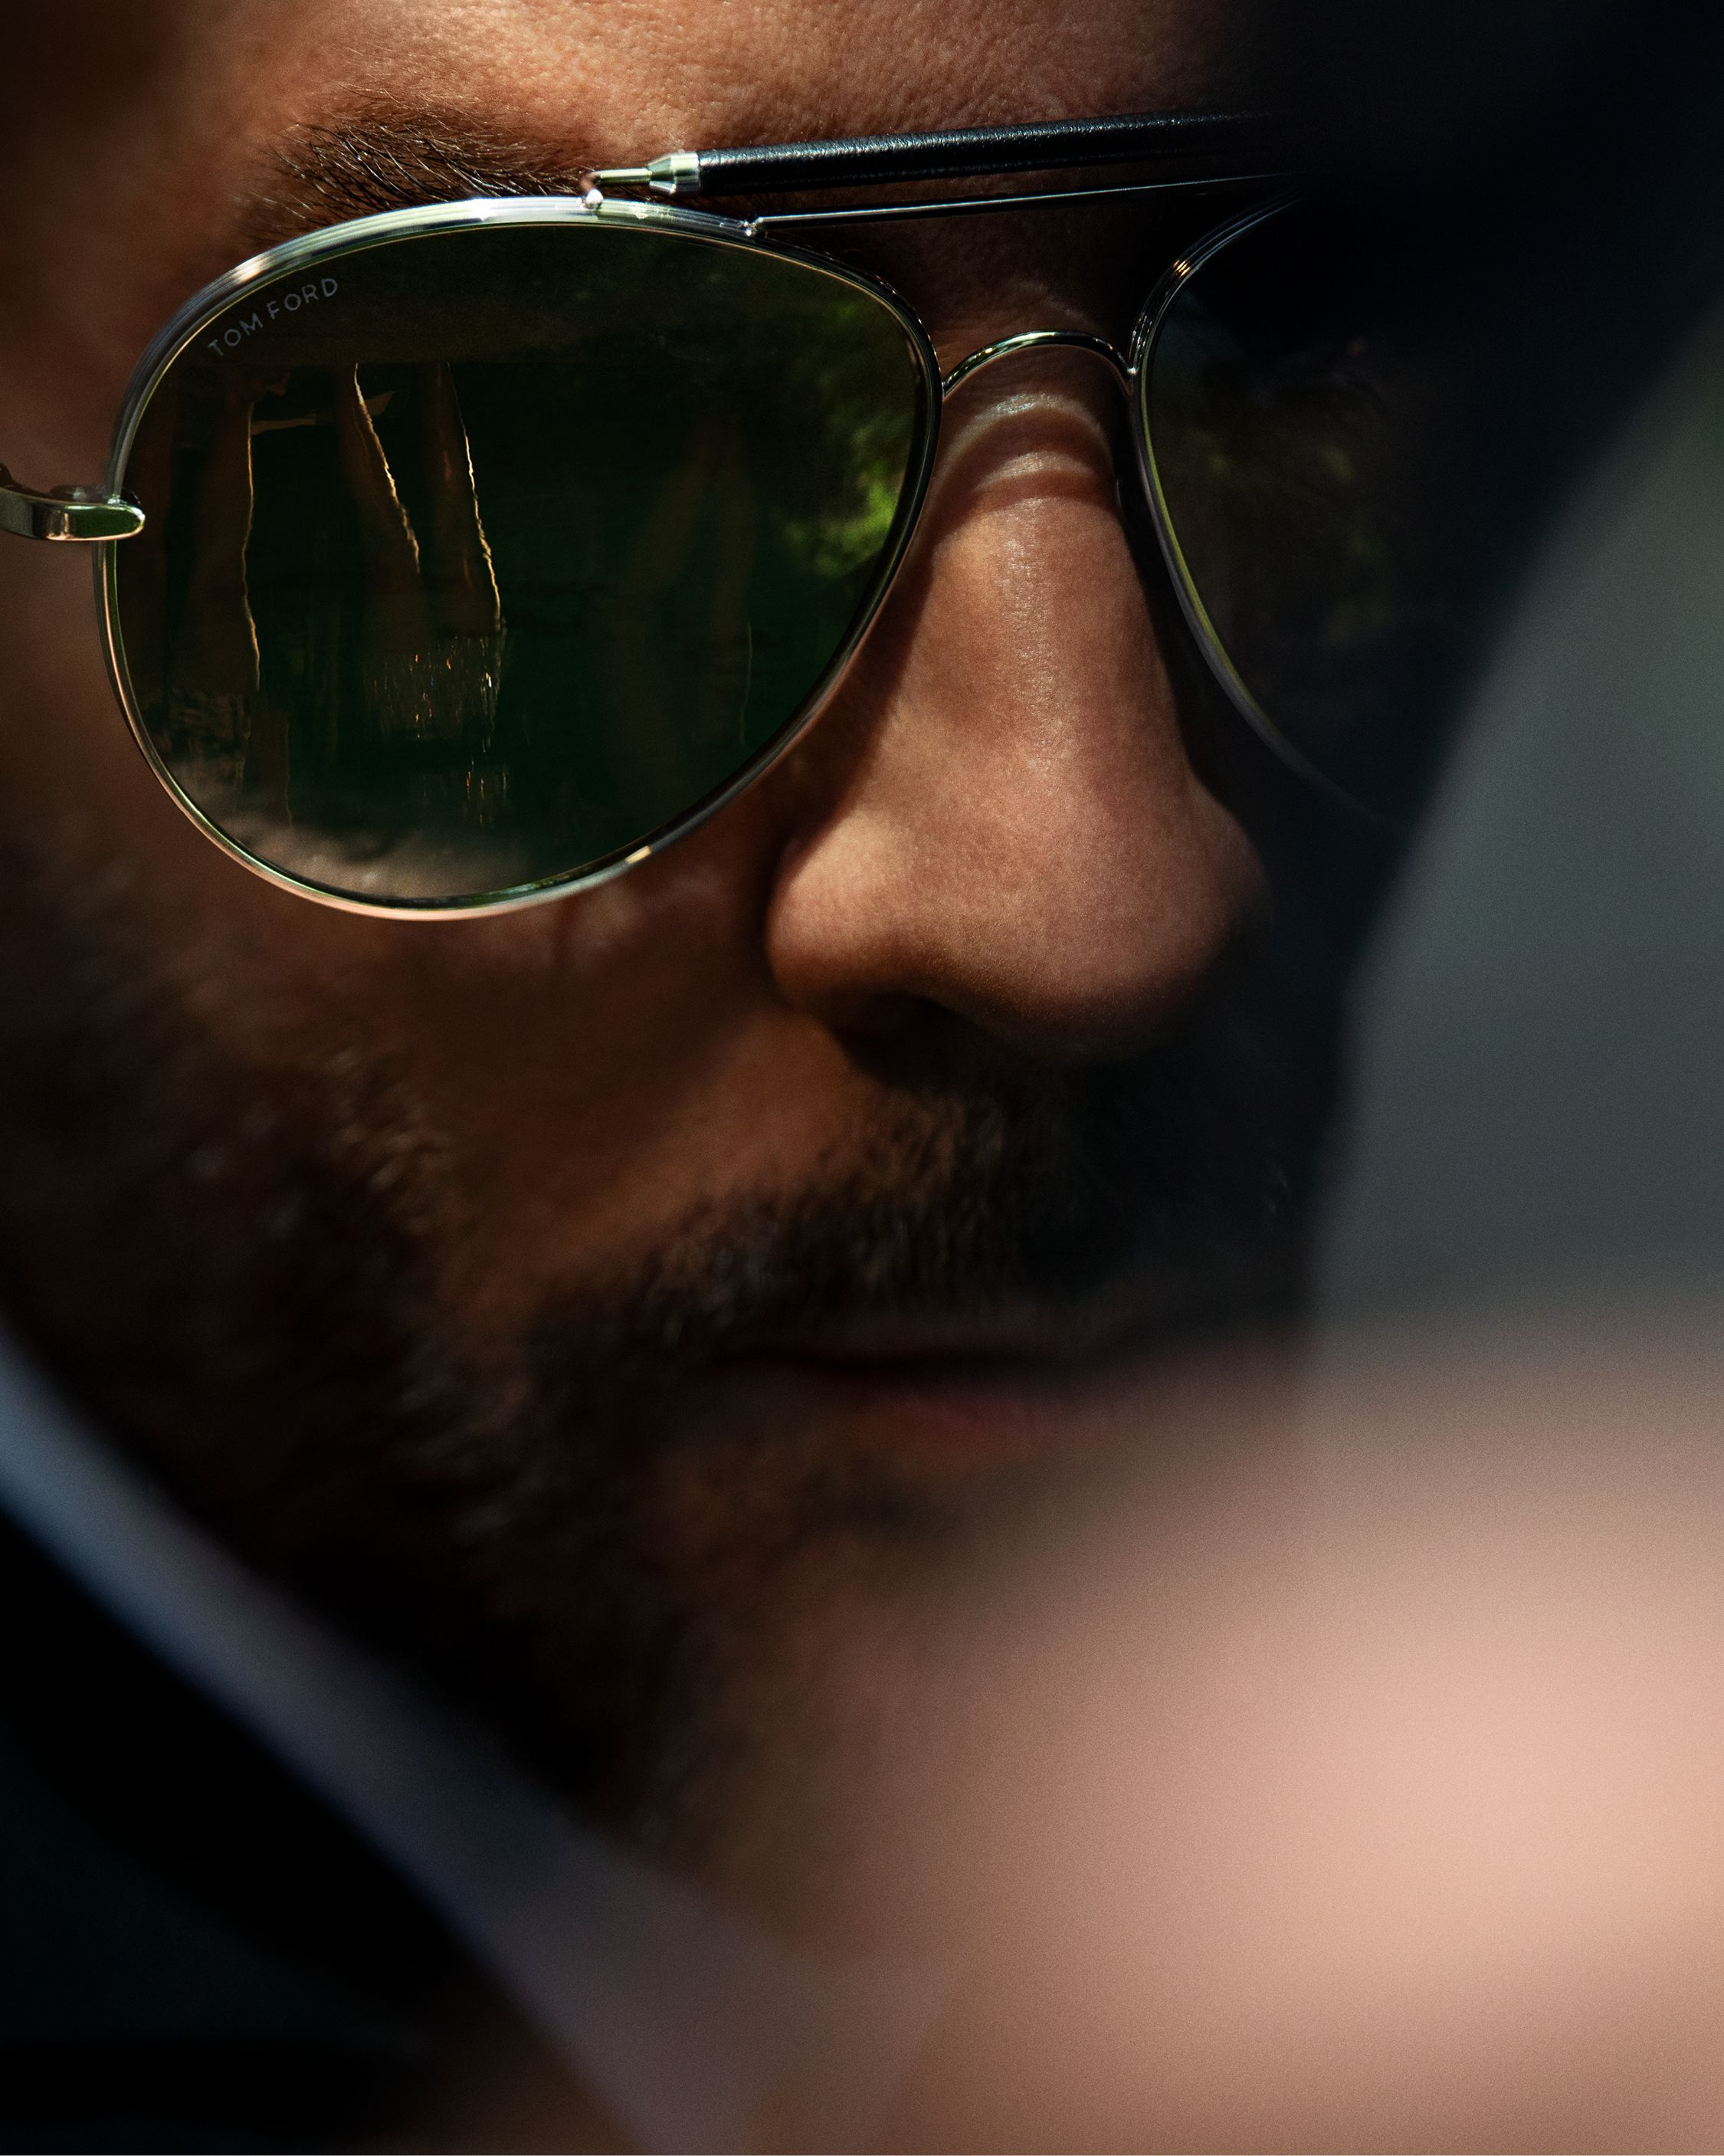 cccc203e160 Discover the exclusive TOM FORD Private Collection featuring 3 new styles  of Sunglasses and Optical Frames.  TOMFORD  TFPRIVATECOLLECTION